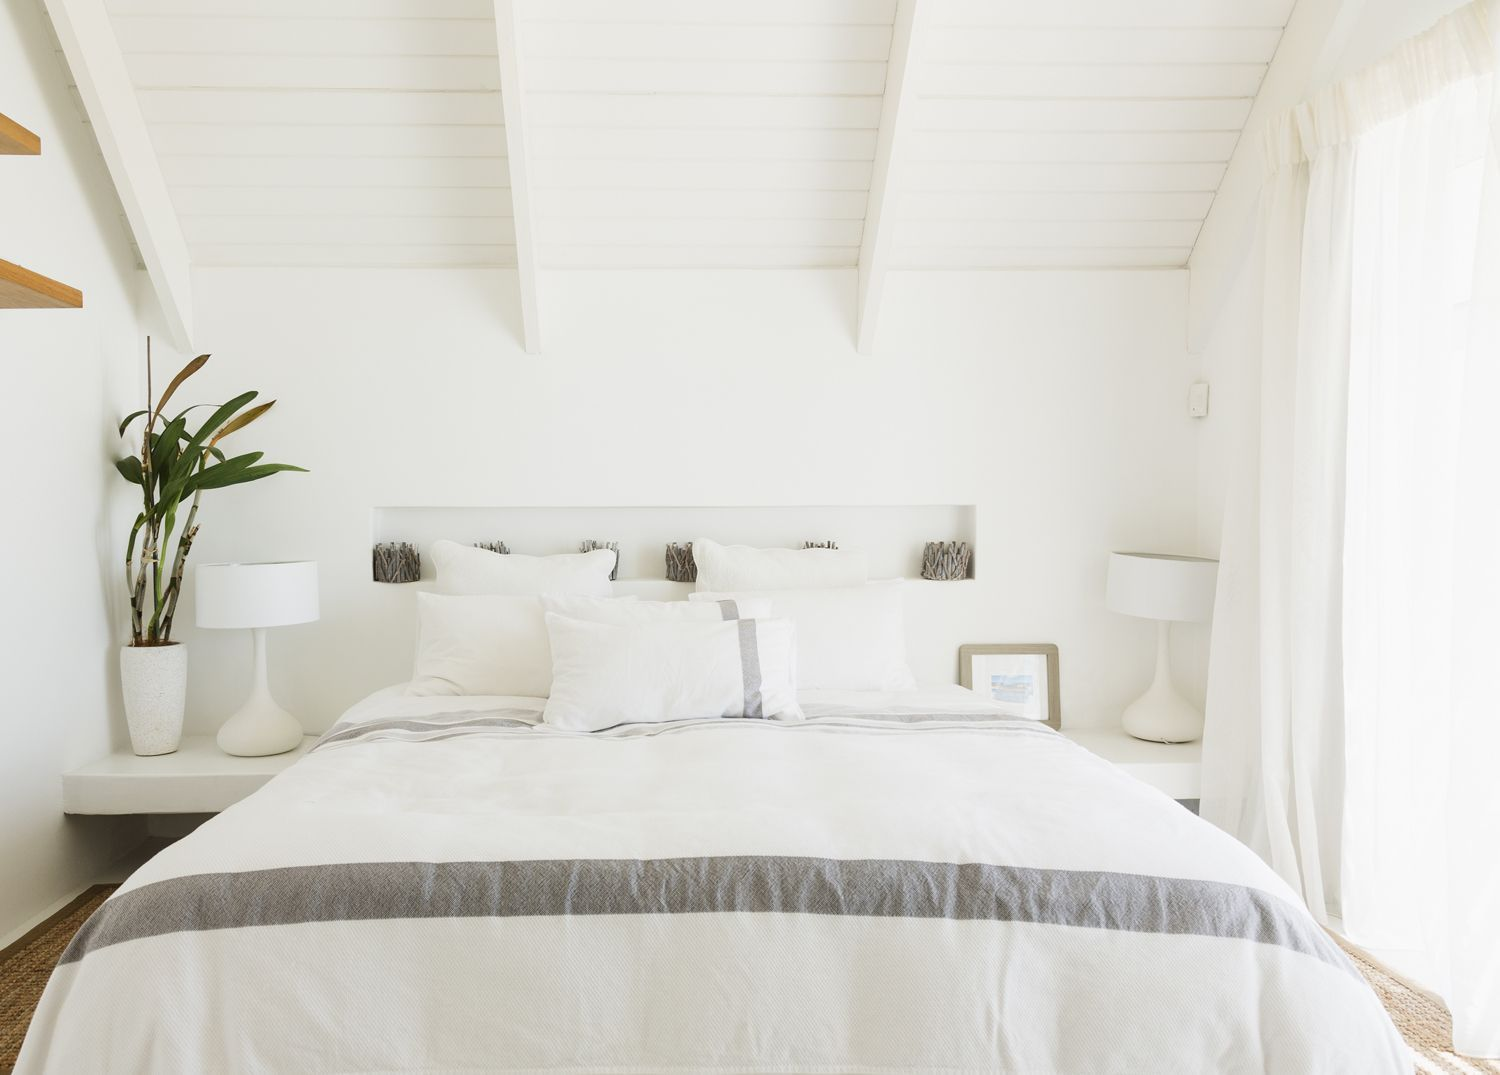 Bedroom lights ideas   Ways To Get Creative With Bedroom Lighting  Bedrooms Bedroom